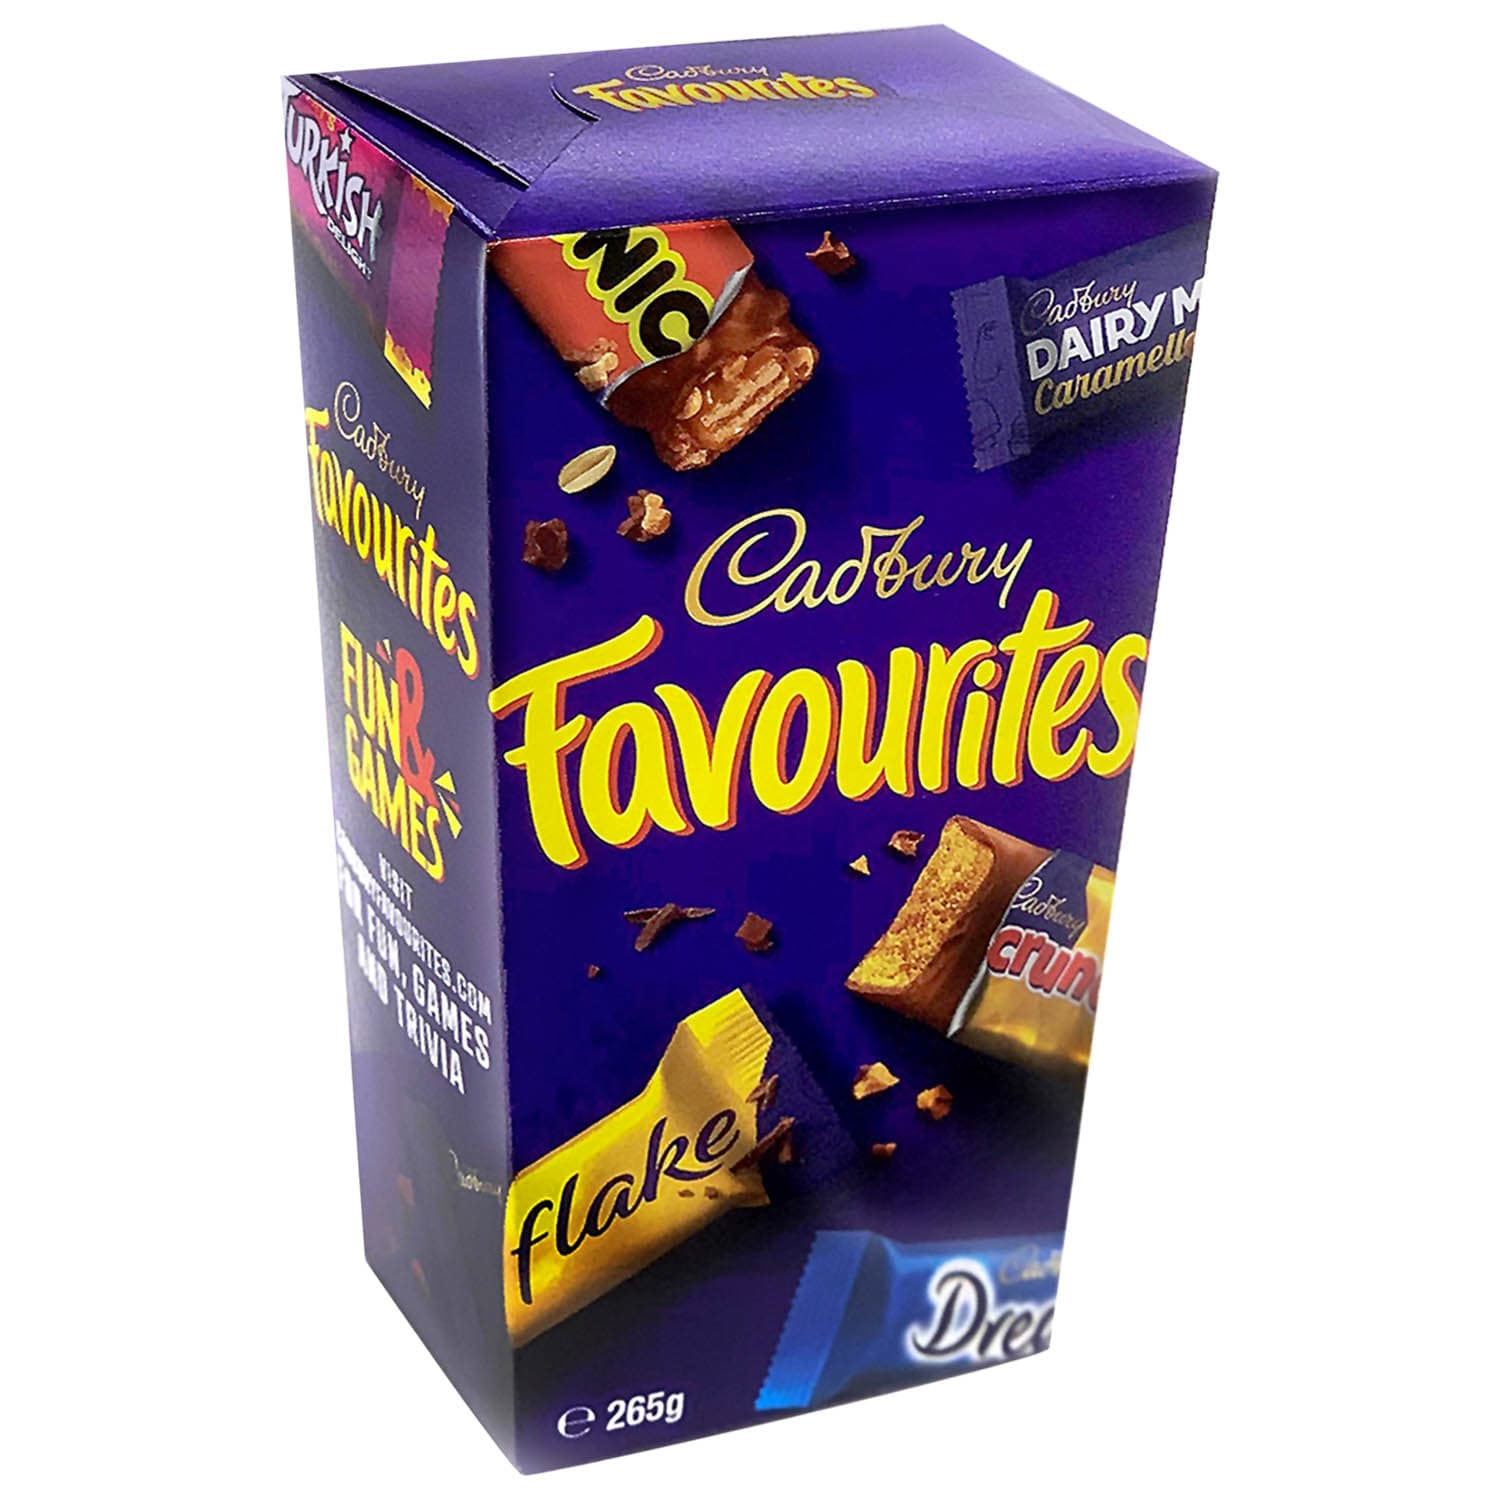 B&M is selling Cadbury Favourites boxes with Dream and Picnic bars inside